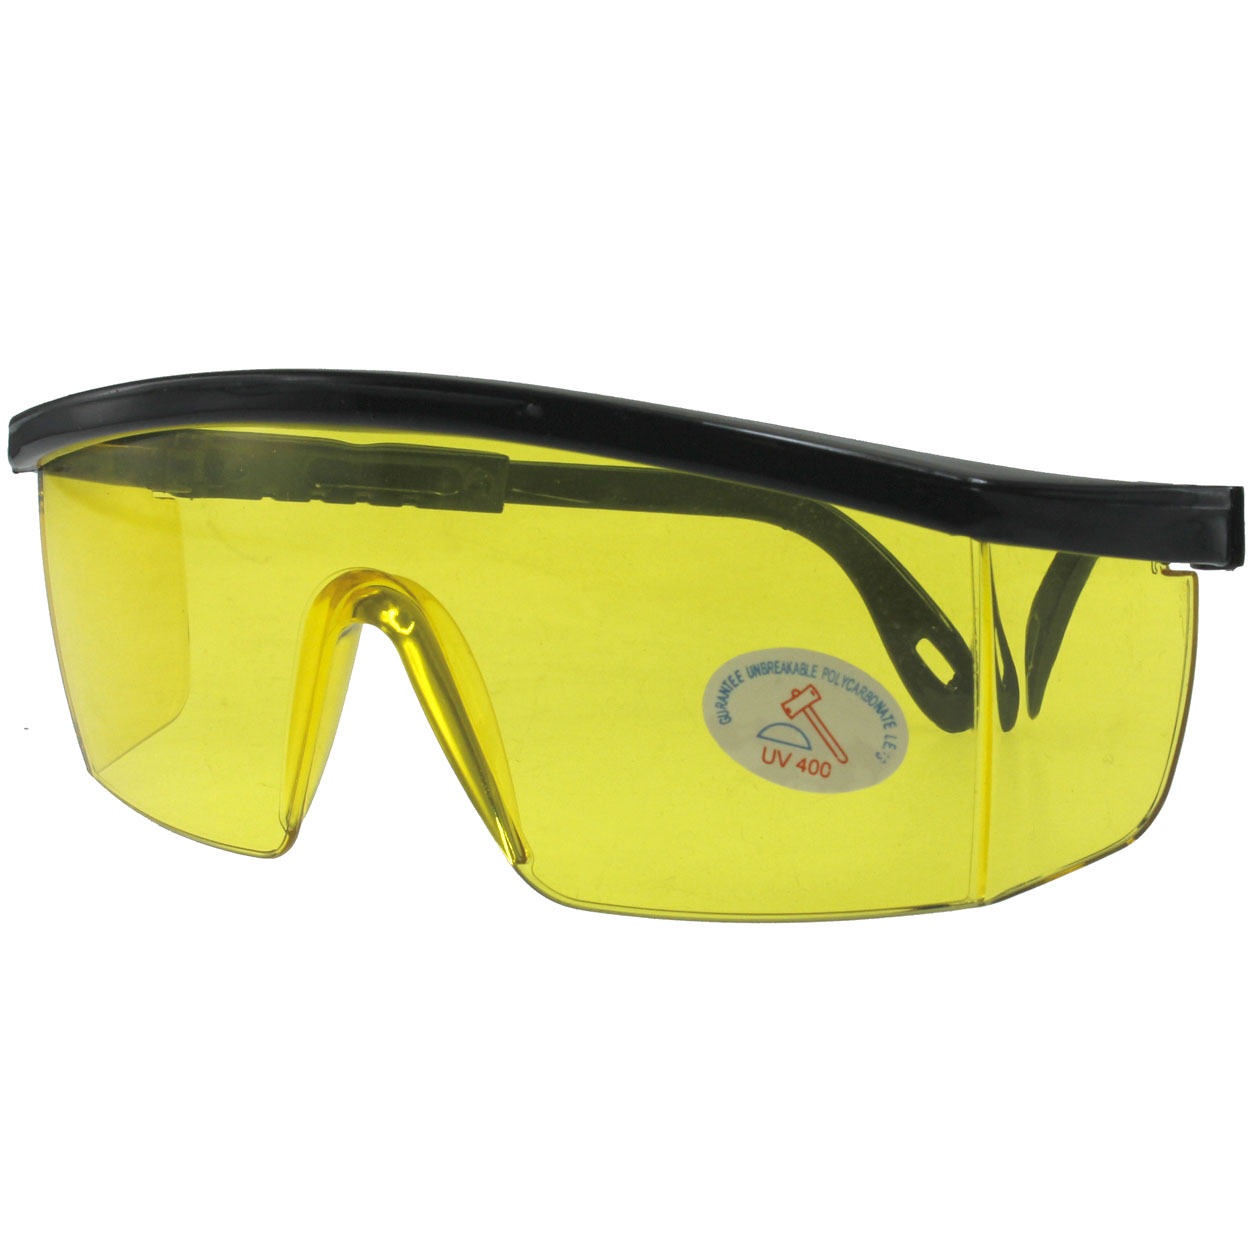 Safety Glasses, 12 pcs